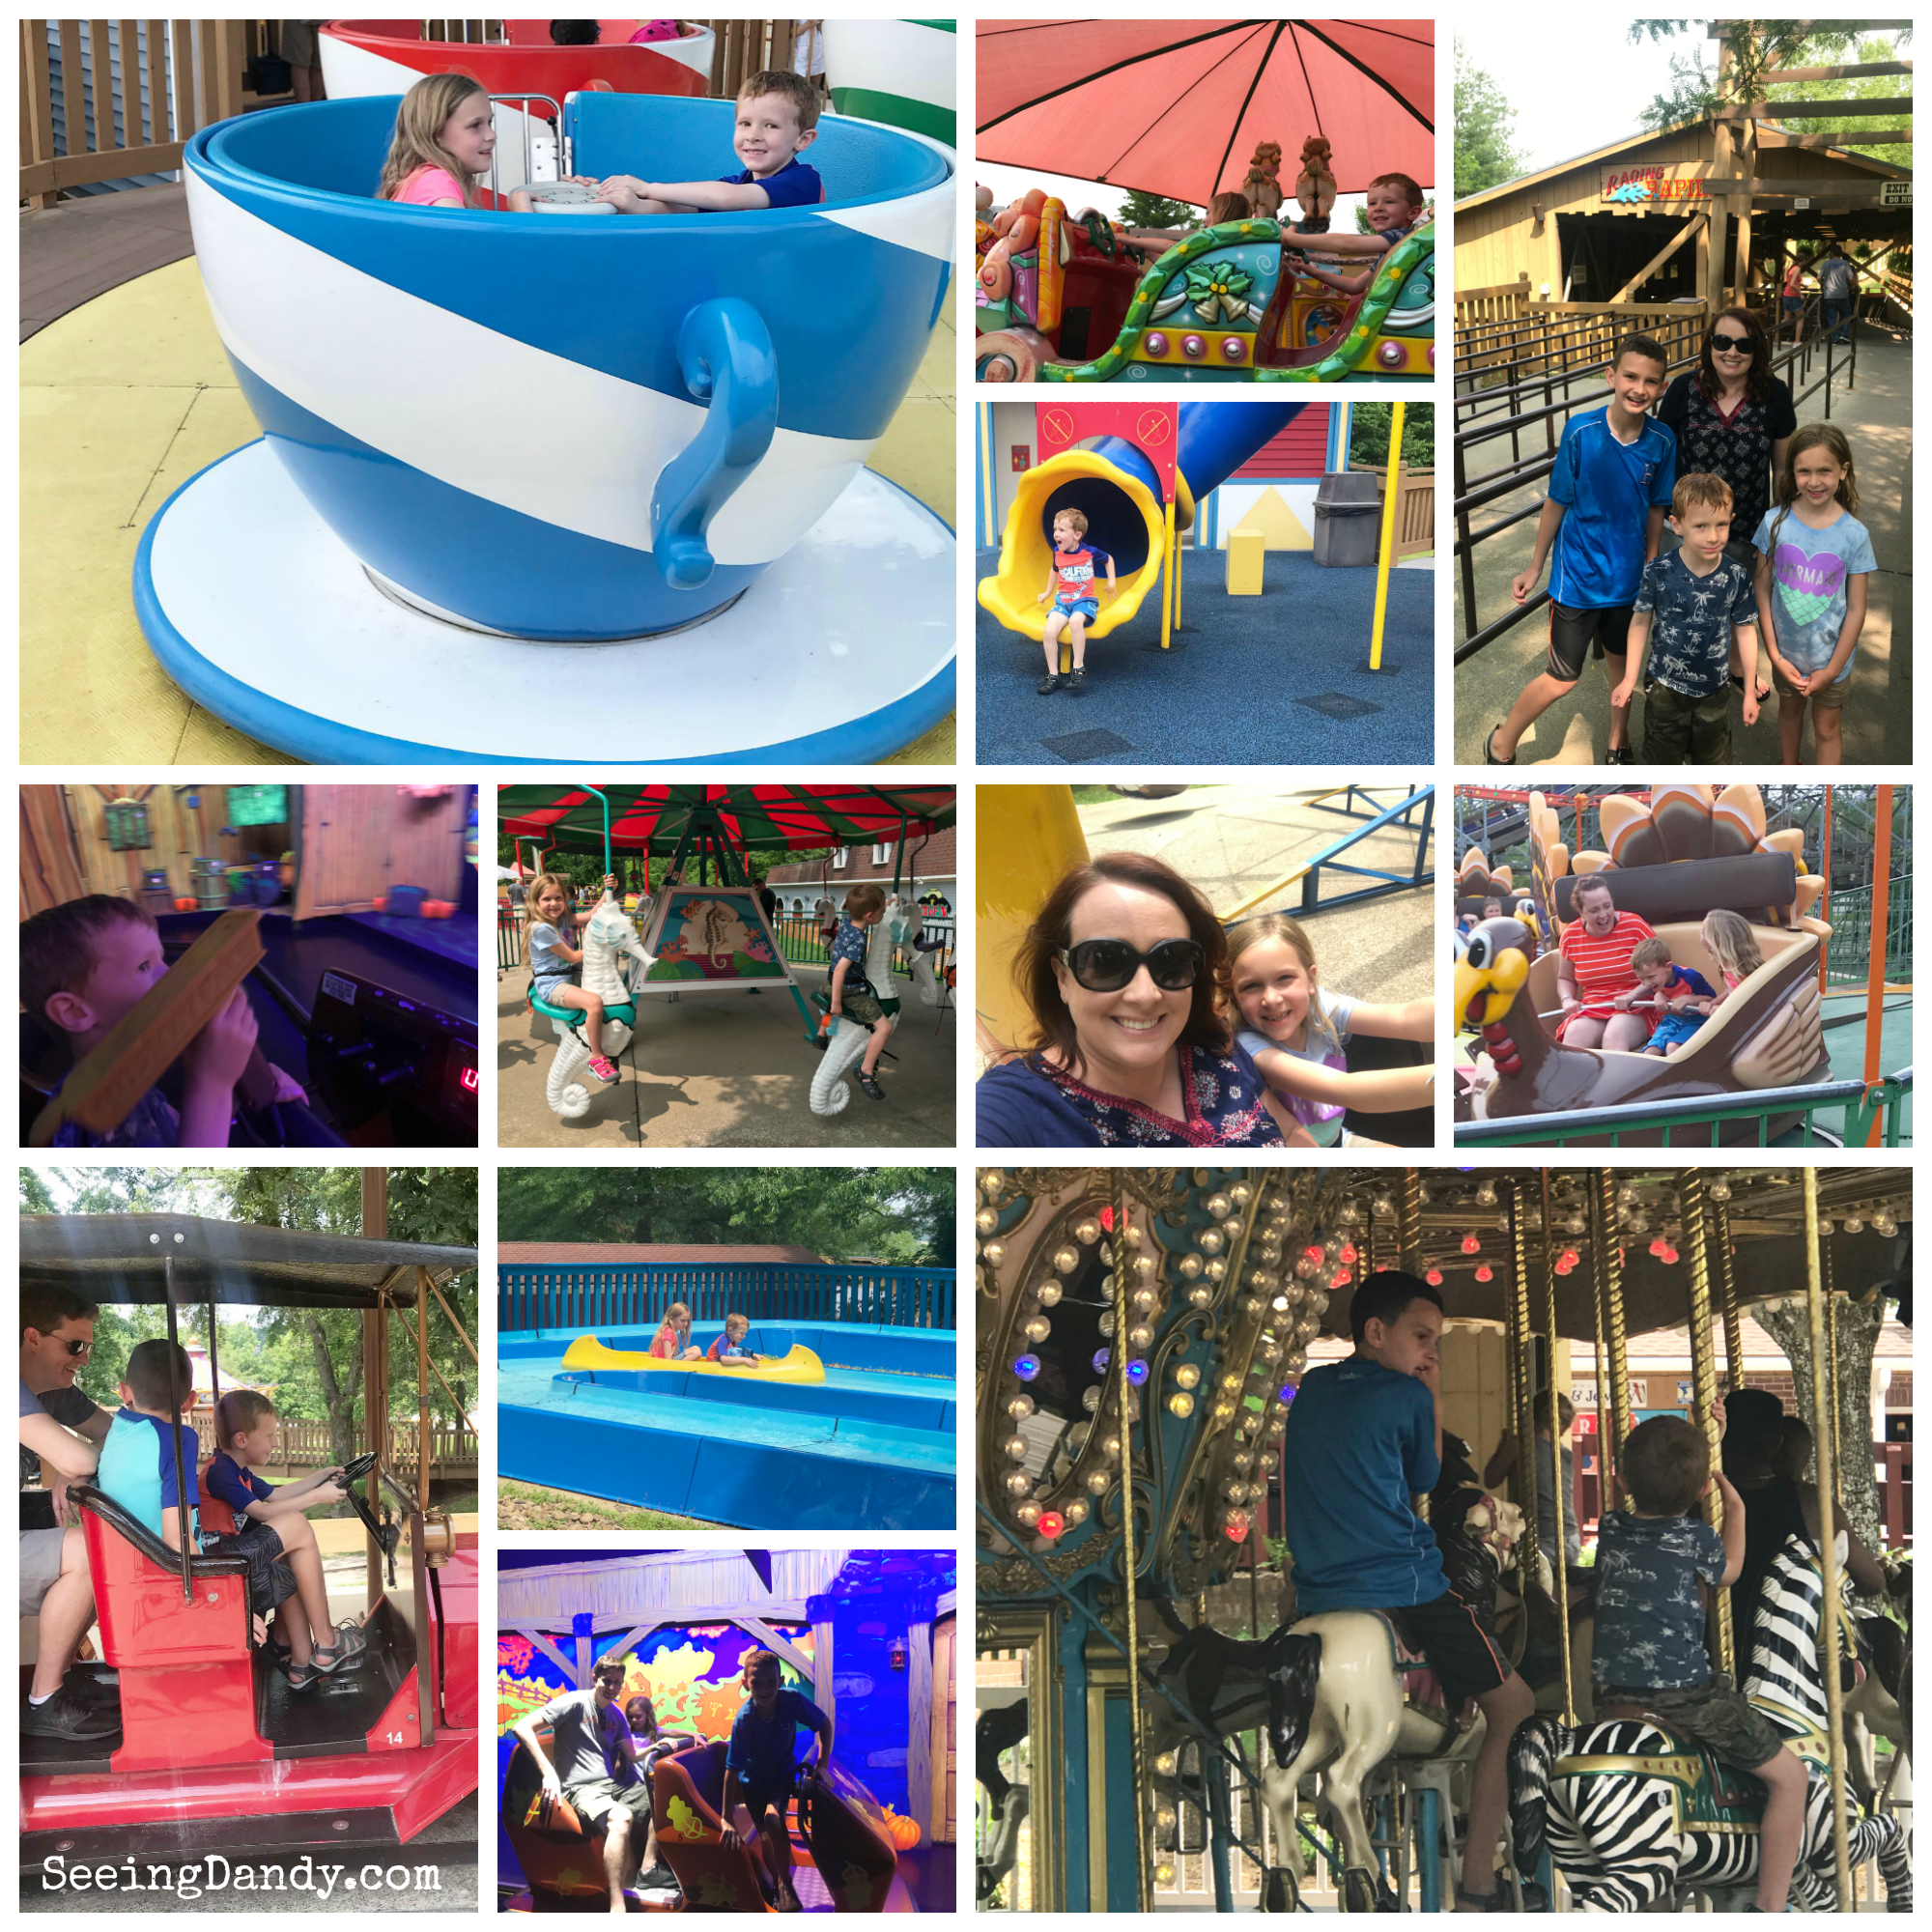 Multigenerational travel theme park rides in Santa Claus, Indiana.